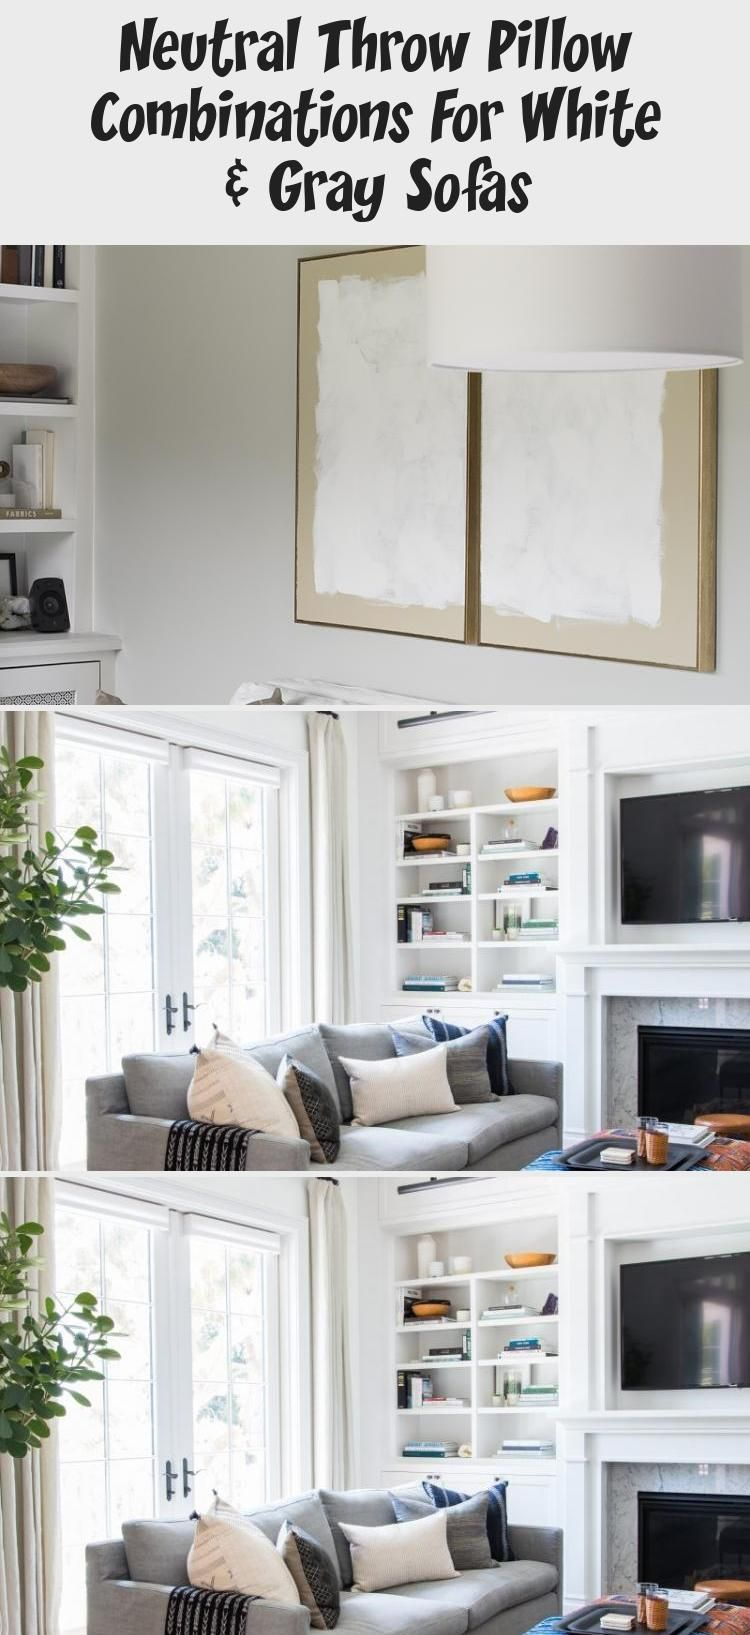 Neutral Throw Pillow Combinations For White & Gray Sofas - DECORATION#combinations #decoration #gray #neutral #pillow #sofas #throw #white